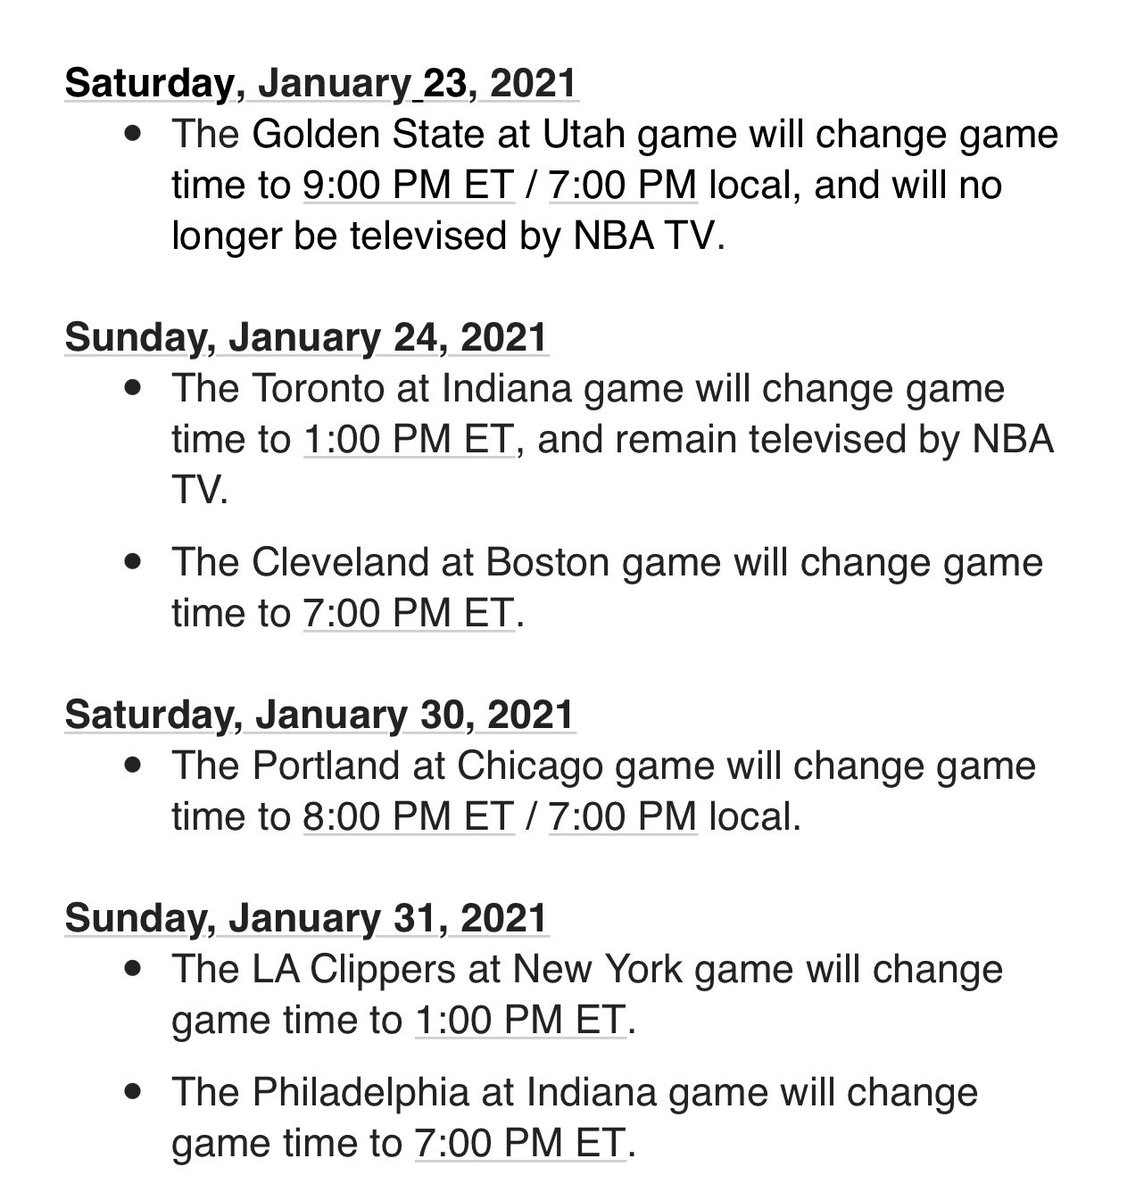 Several changes to the NBA schedule: https://t.co/MVCl44hyUz